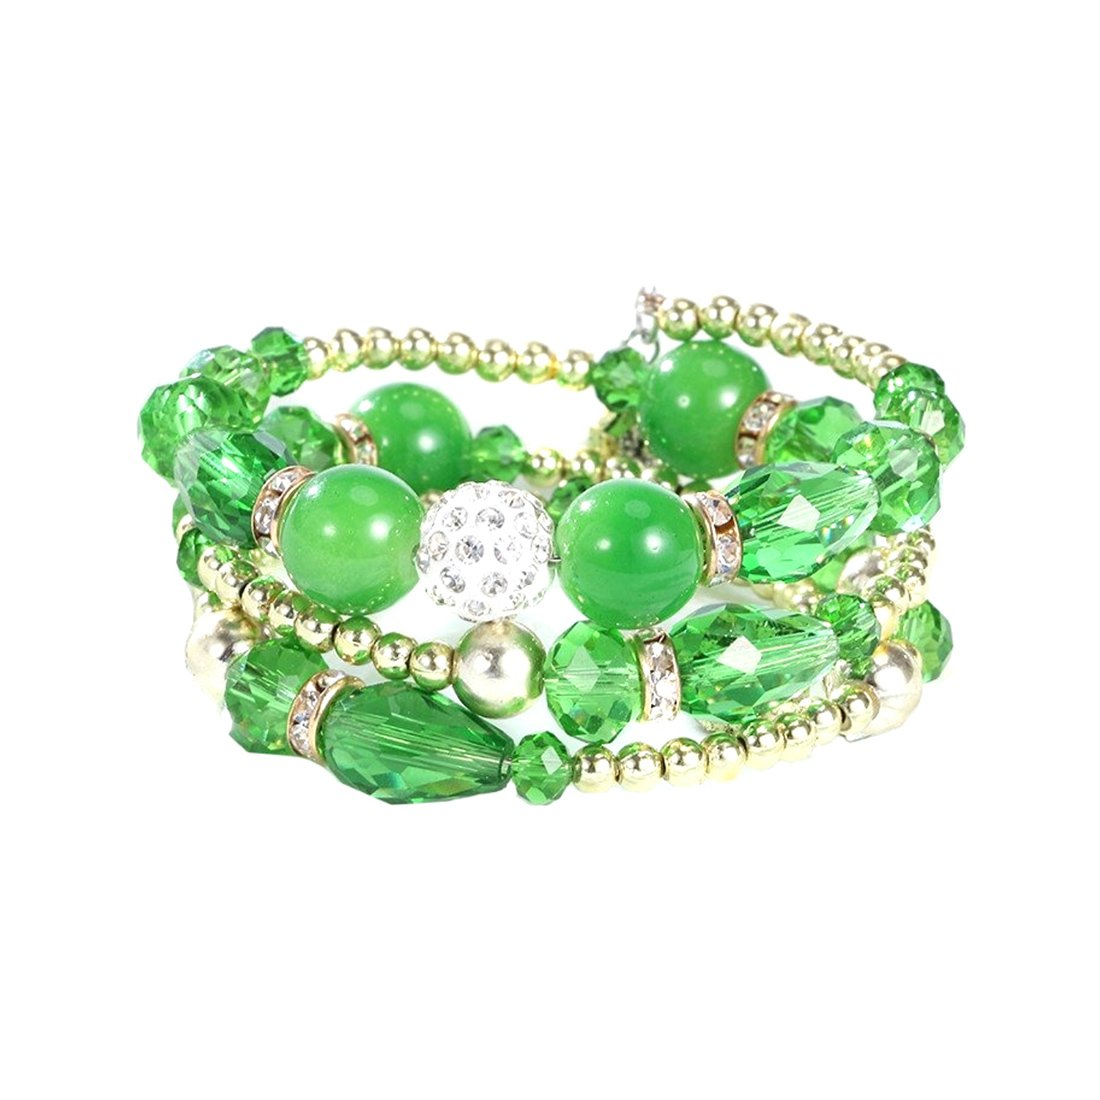 Novadab Multi Layered Crystal Beaded Boho Bracelet For Women, A Valentine Gift For You Love One (Green)